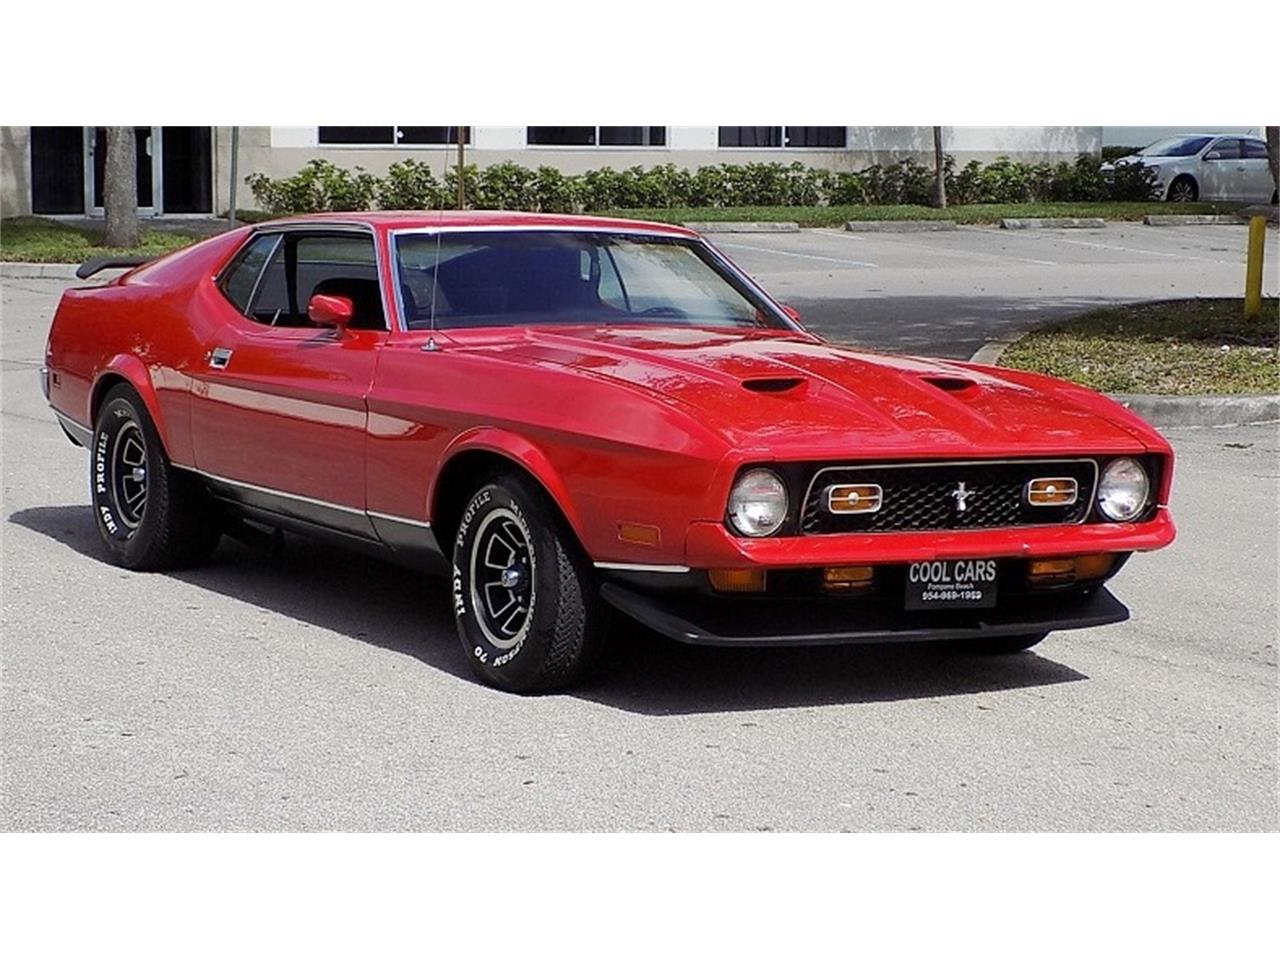 Ford Mustang 1972 Mach 1